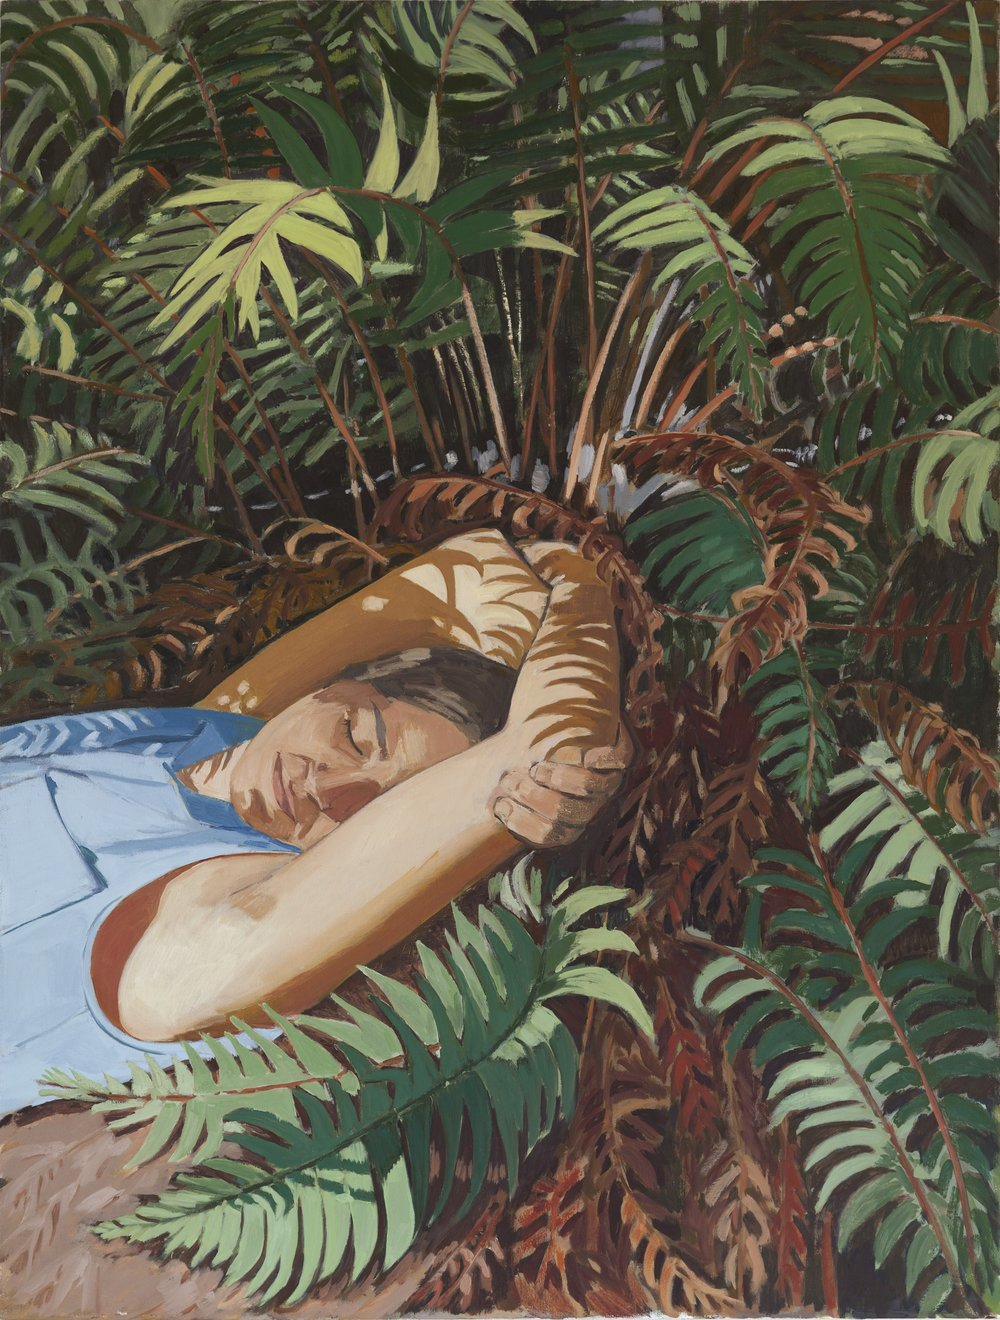 "Birthday with the Ferns, 2018, oil on canvas, 48"" x 36"", $4,200 (payment plan available)"